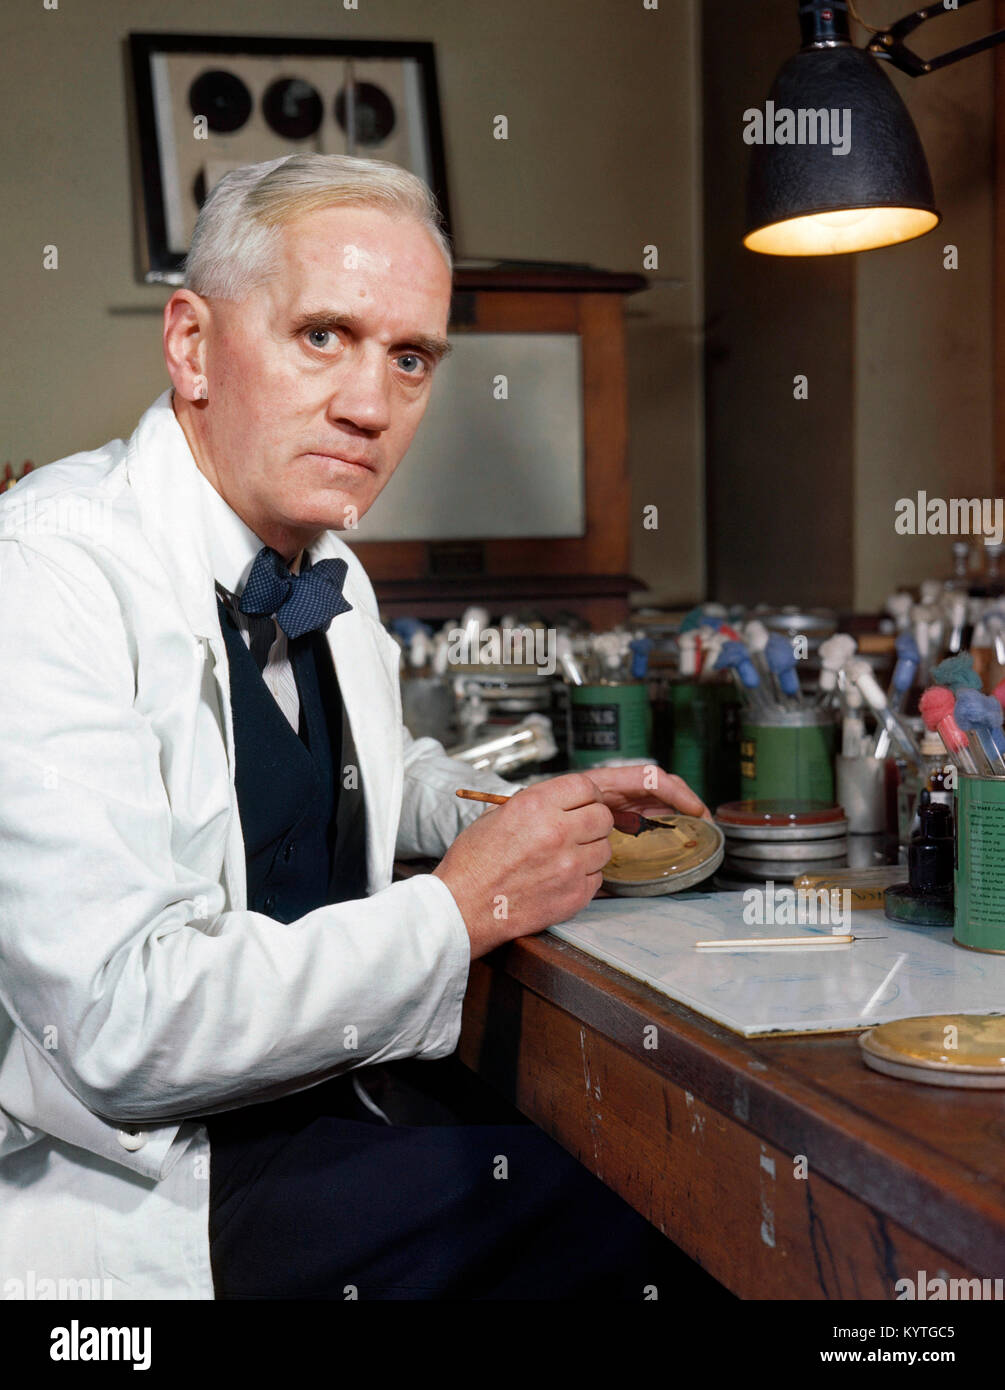 Sir Alexander Fleming (1881-1955), the Scottish scientist famous for the discovery of penicillin. Photo taken between - Stock Image